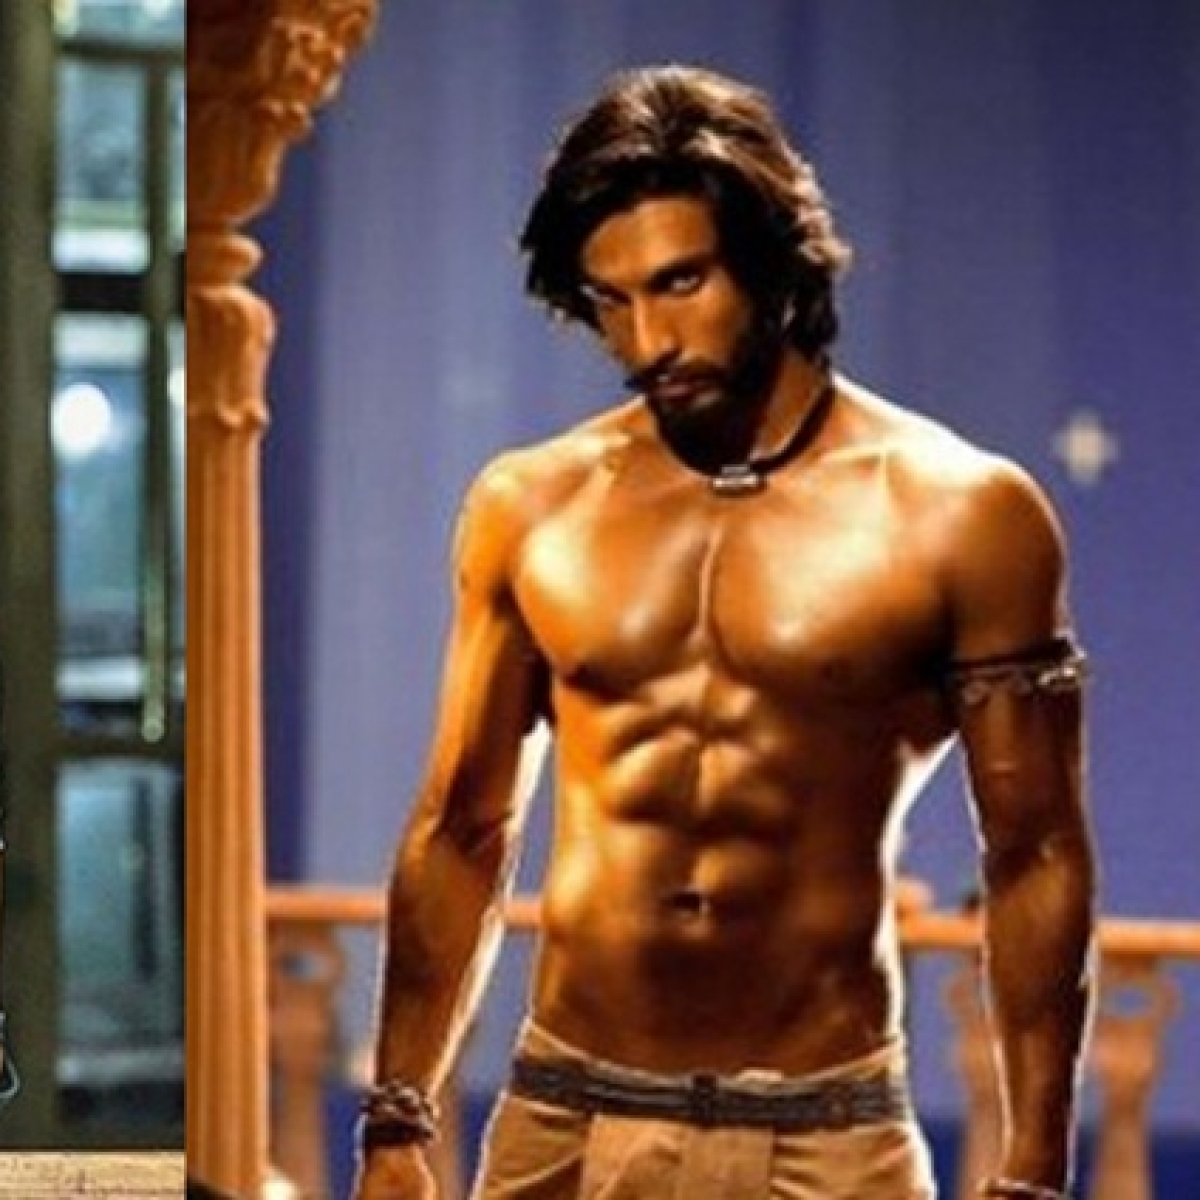 Maha Shivratri 2020: From Hrithik to Ranveer, actors who are perfect for the role of Lord Shiva onscreen